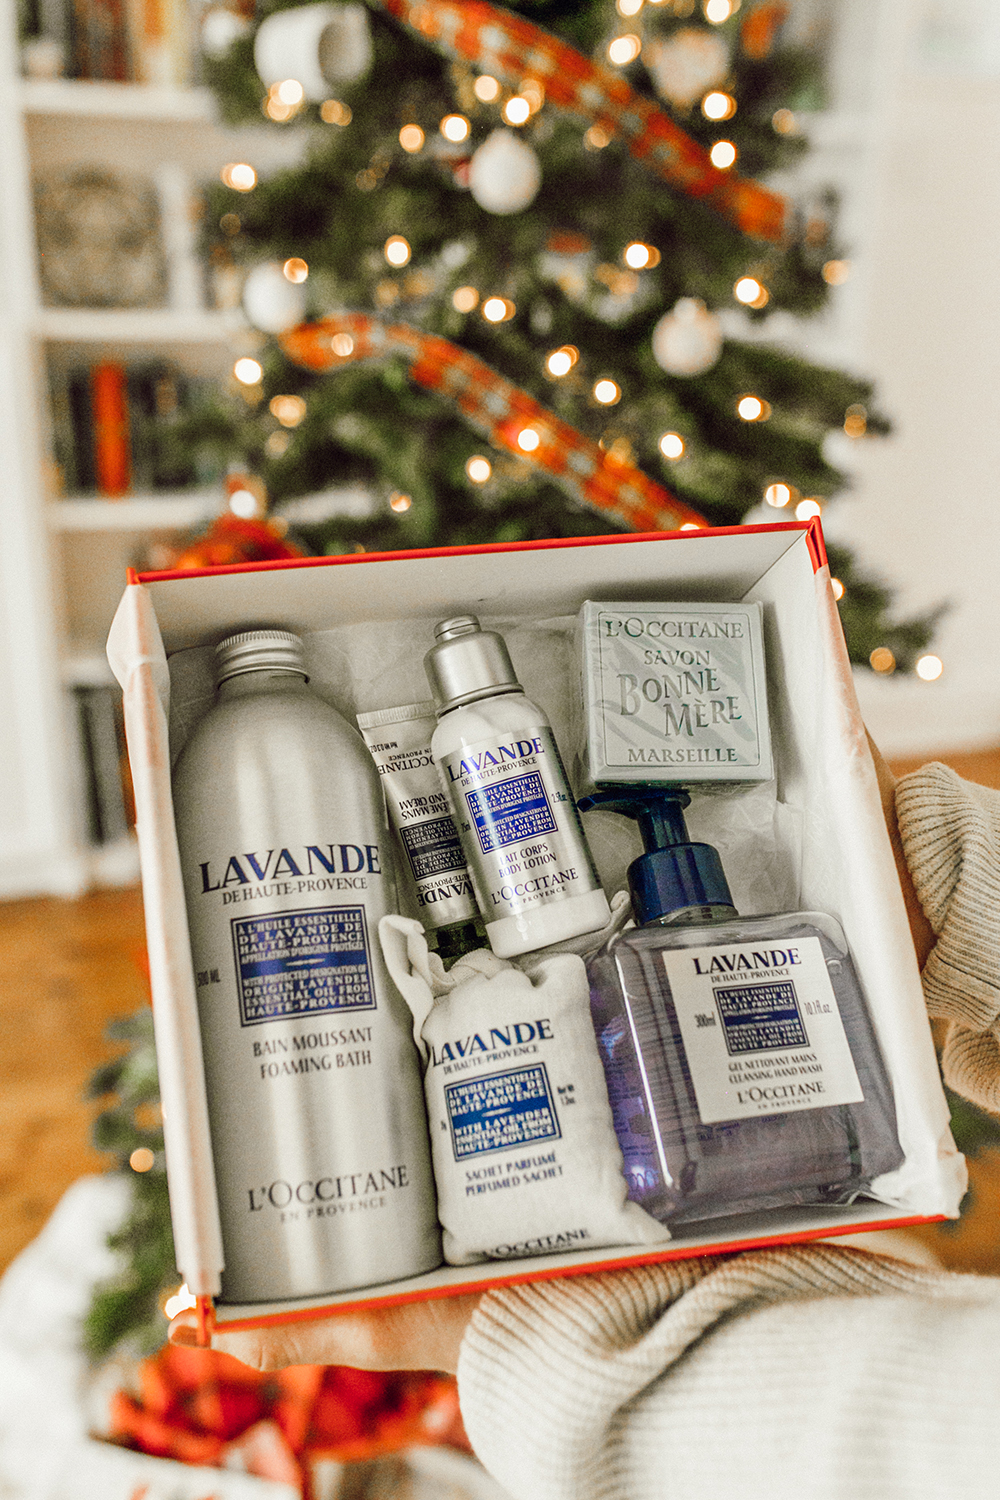 livvyland-blog-olivia-watson-austin-texas-lifestyle-blogger-christmas-tree-holiday-gift-idea-l'occitane-beauty-5